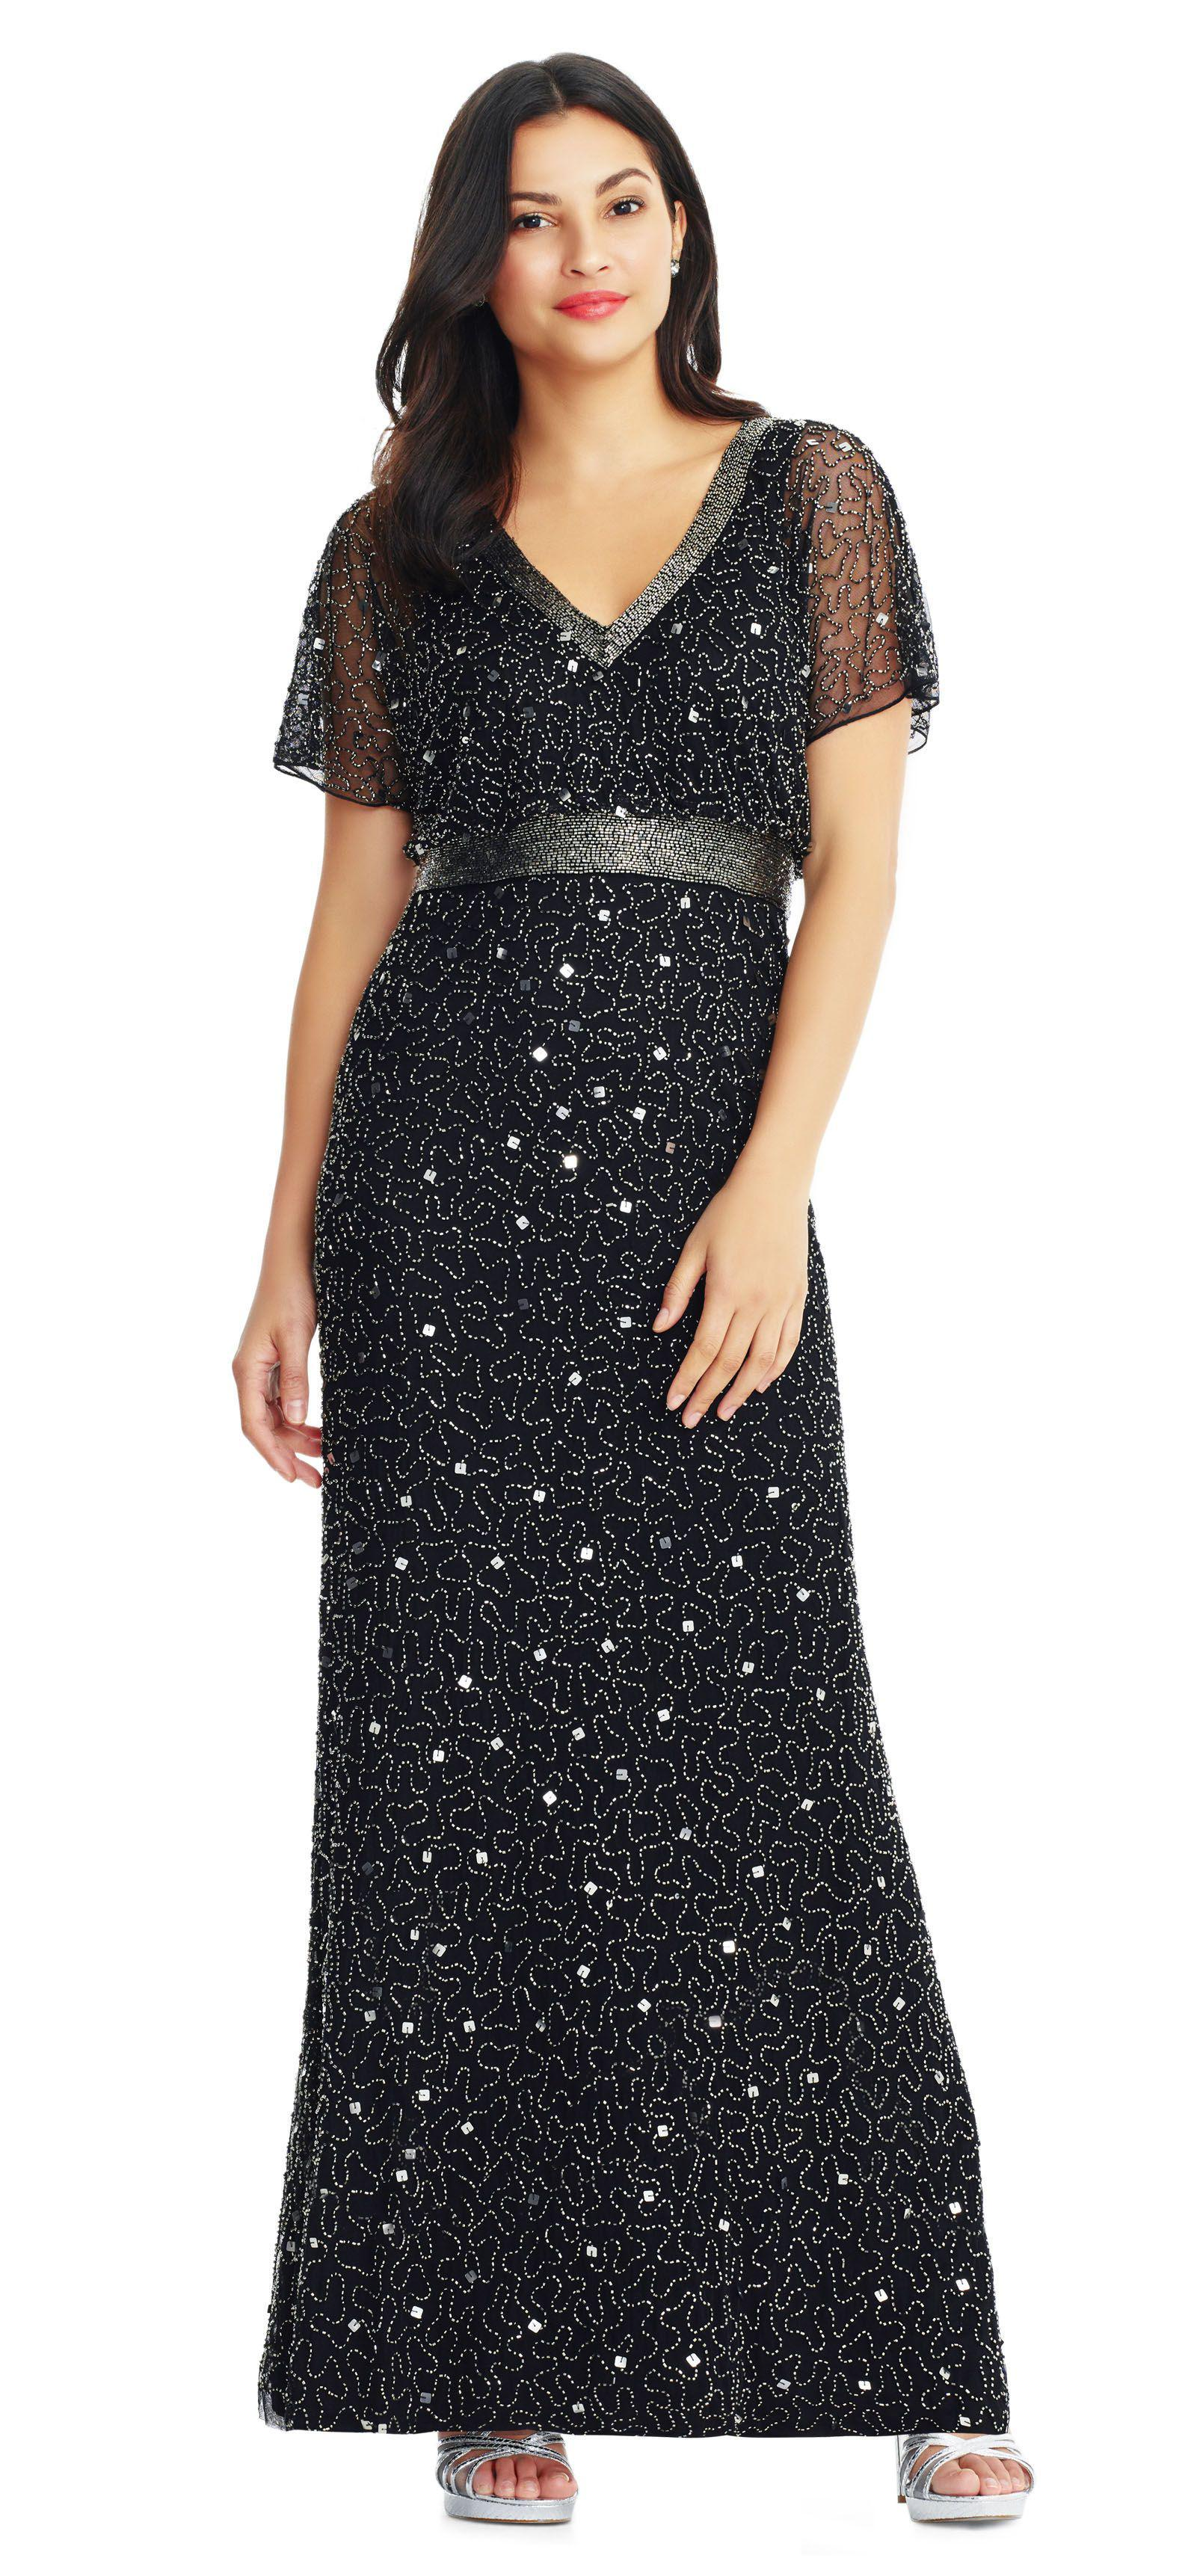 Lyst Adrianna Papell Swirl Beaded Gown Gown Beaded With Sheer Flutter Sleeves   9584cf